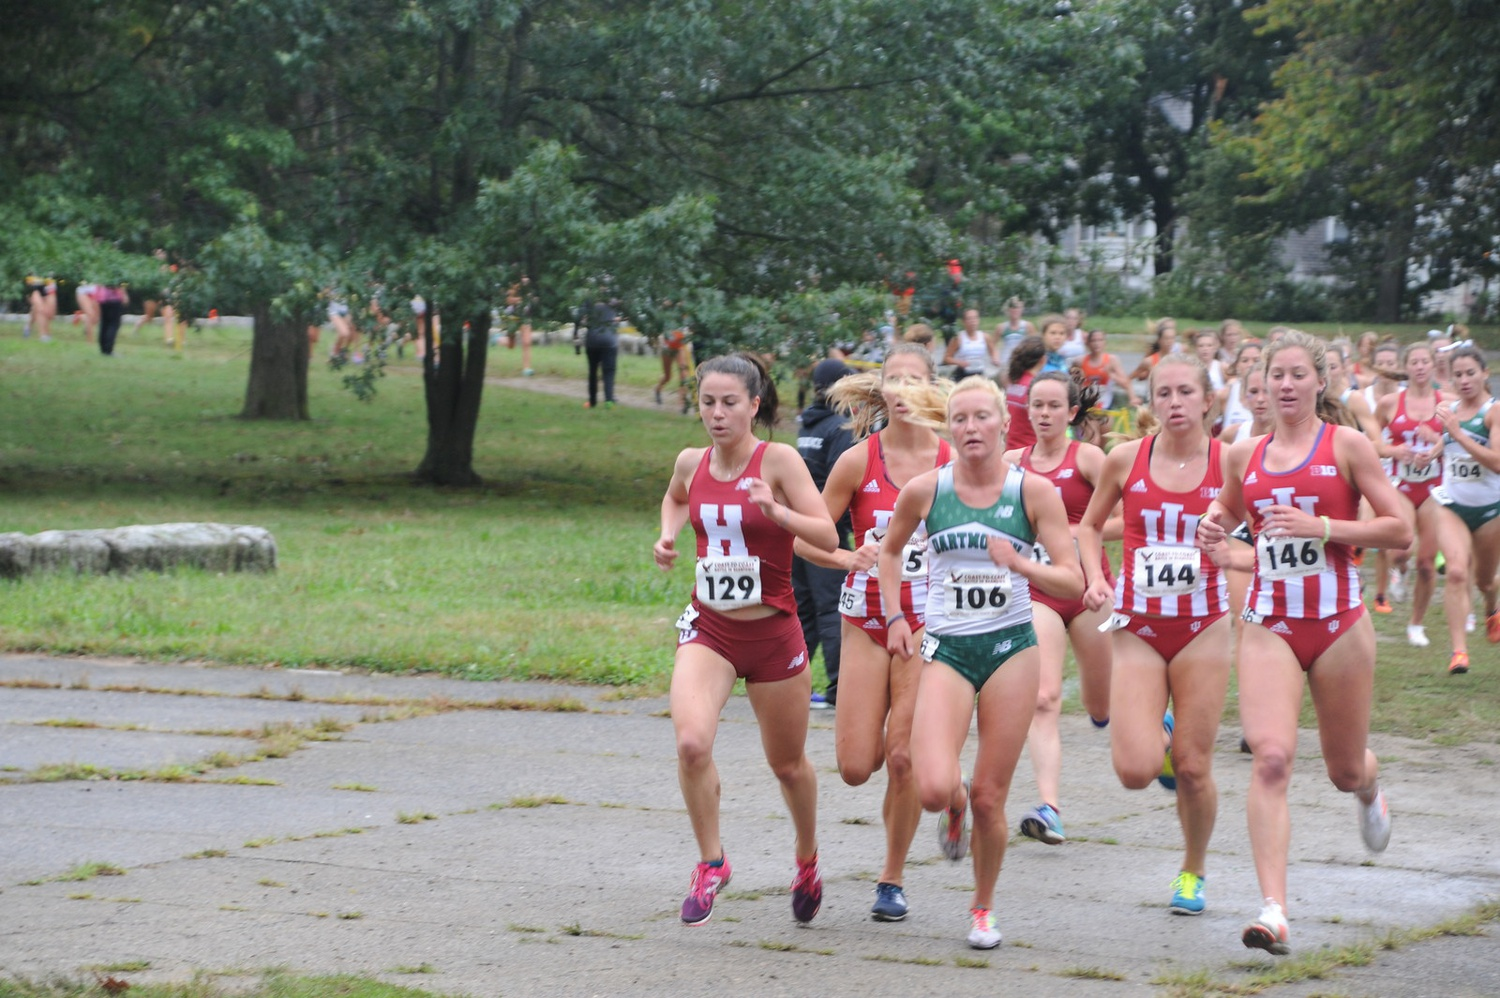 The women took home first place for the Crimson in the Bronx this weekend at the Fordham Fiasco.